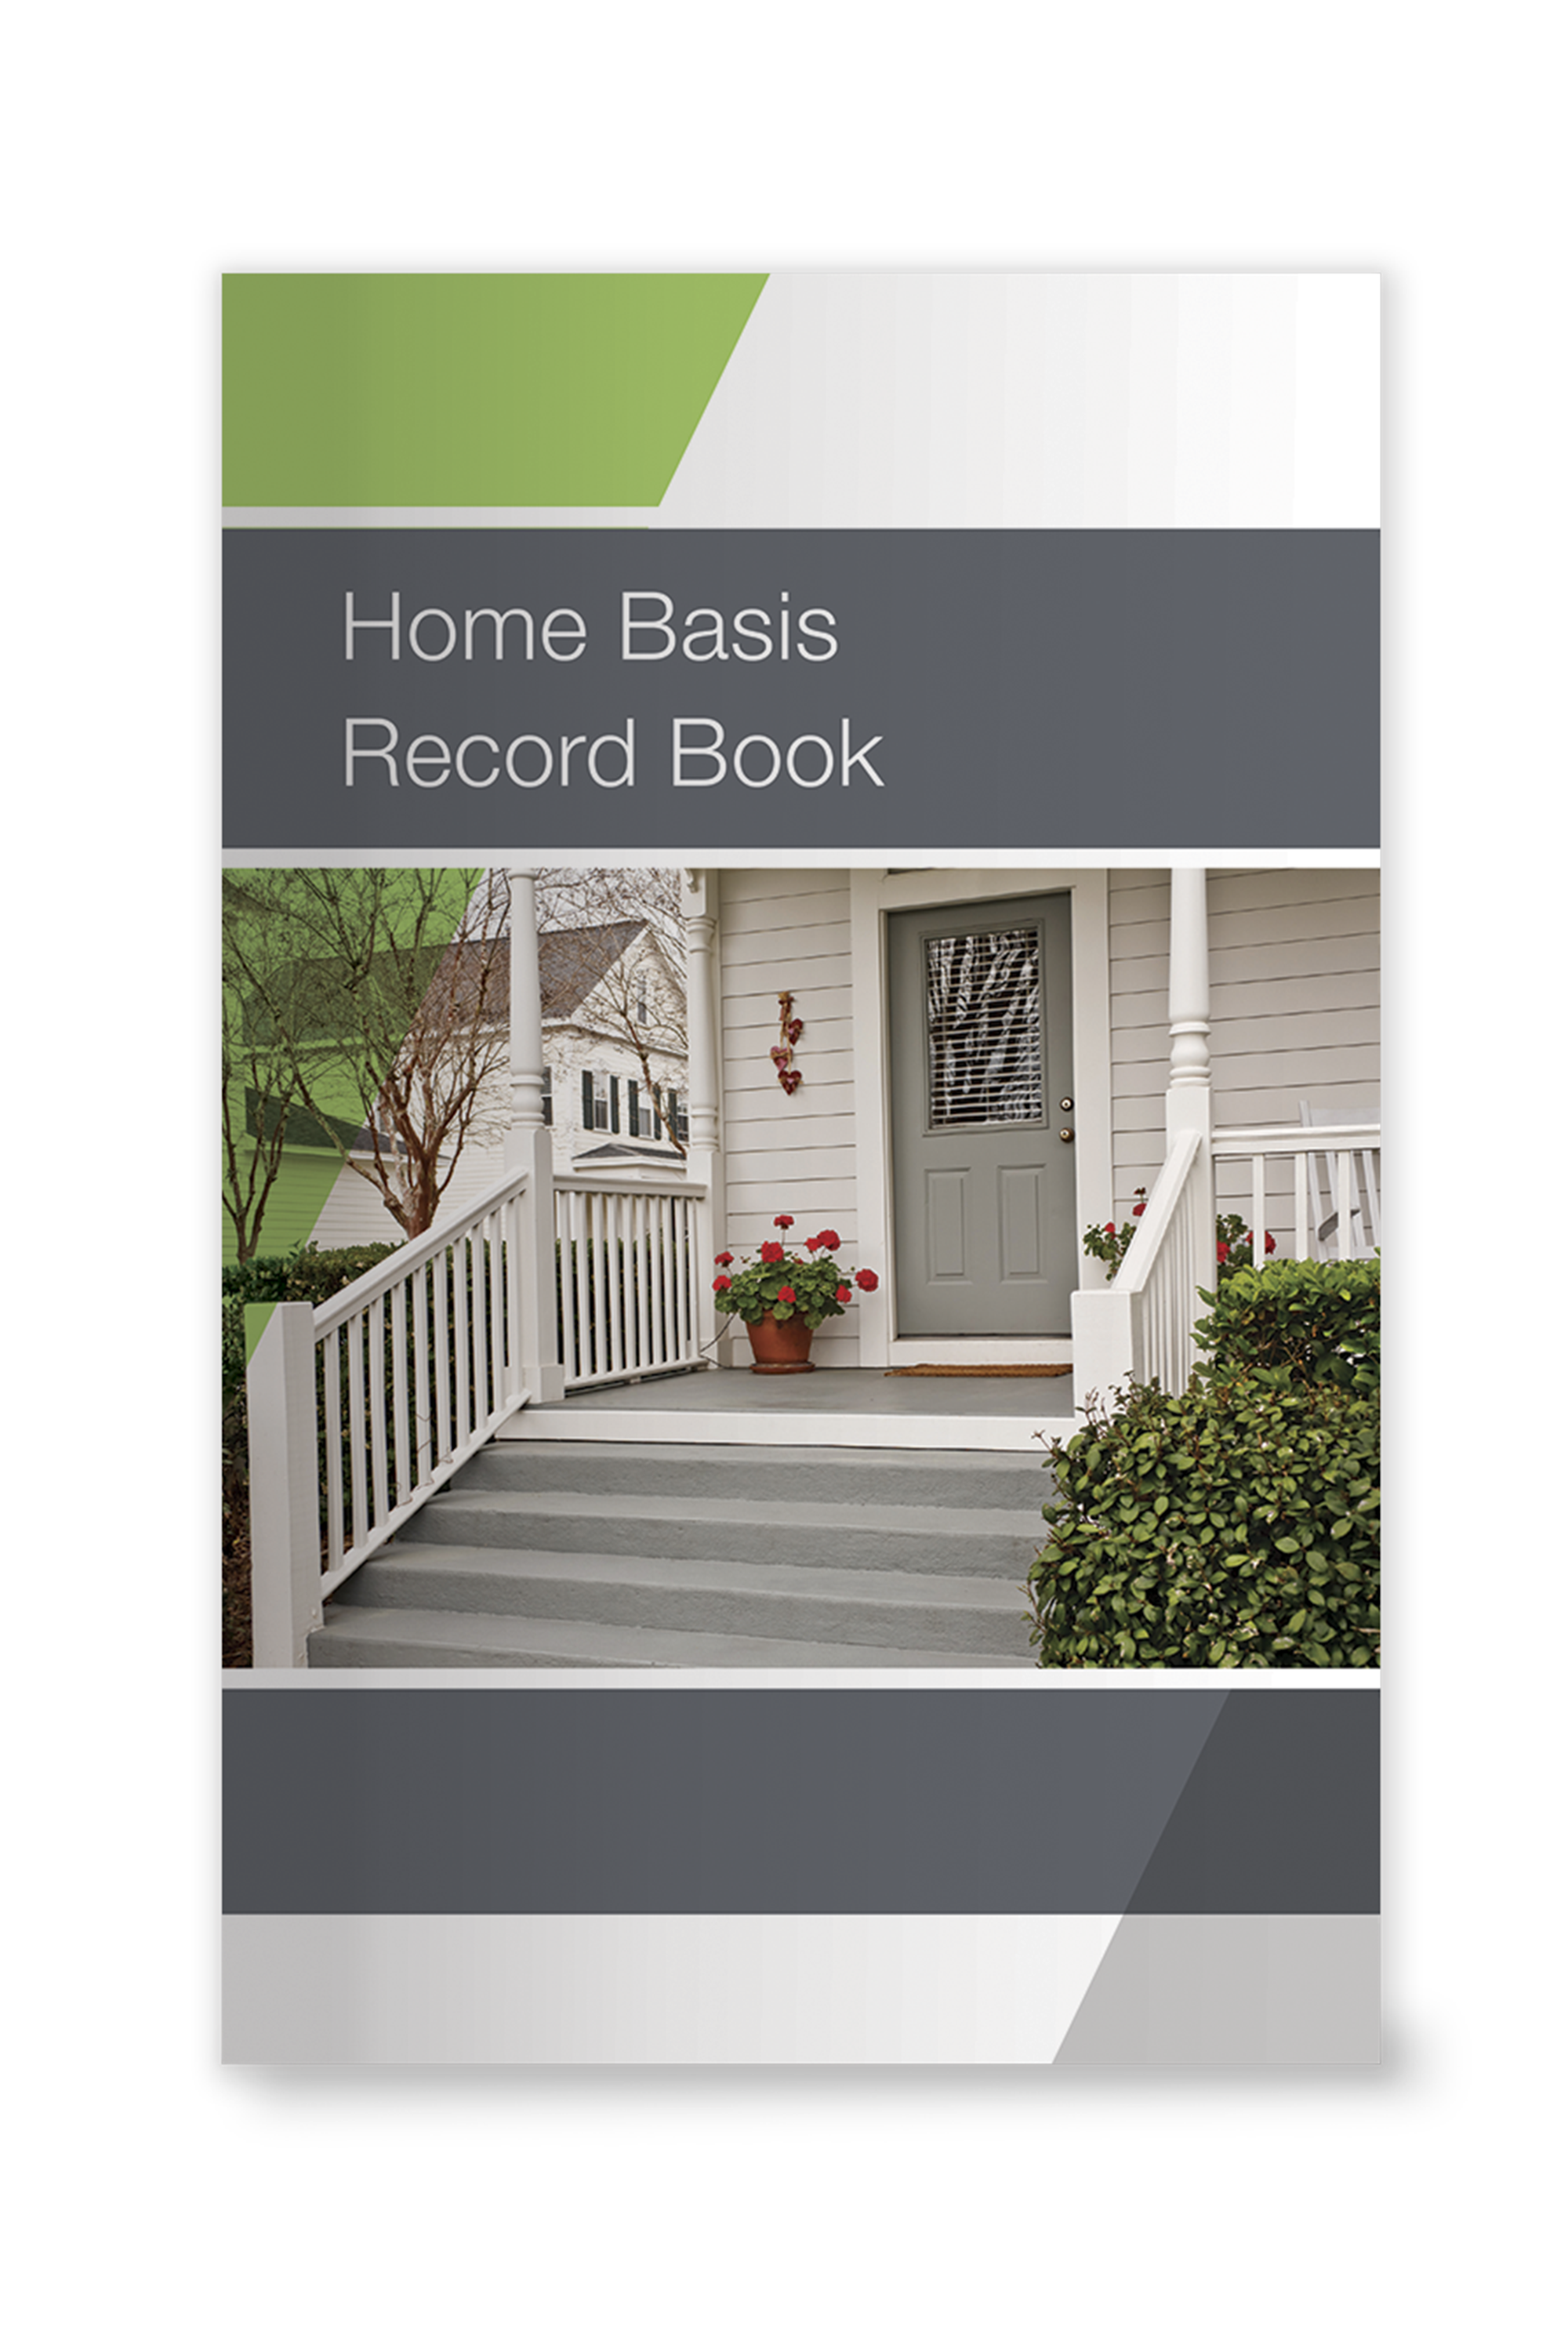 Home Basis Record Book - #602